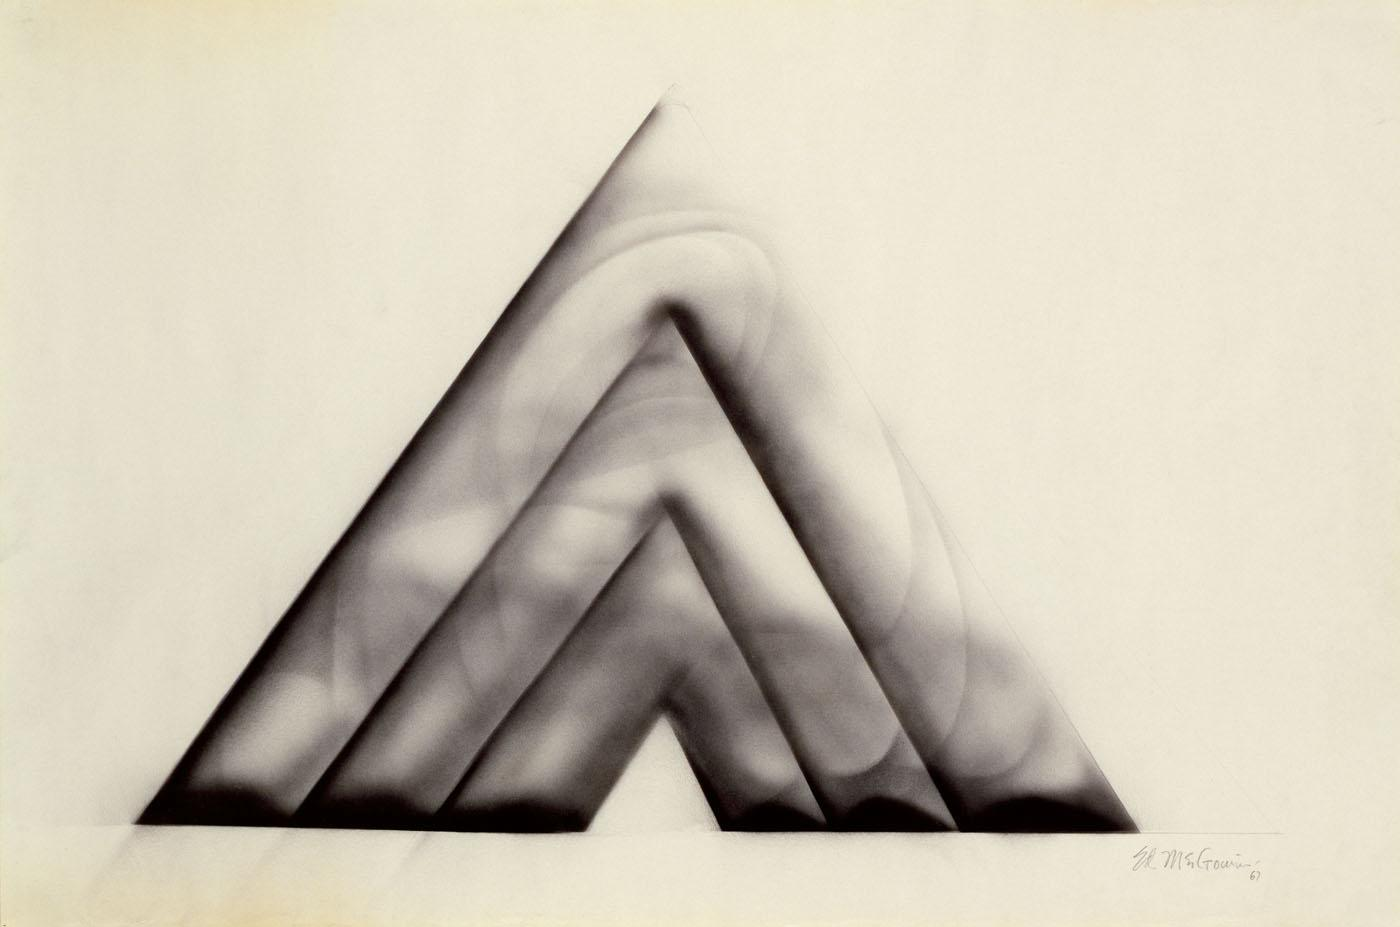 Three Locked Pyramids, 1967 by Ed Mcgowin | Museum Art Reproductions Ed Mcgowin | WahooArt.com